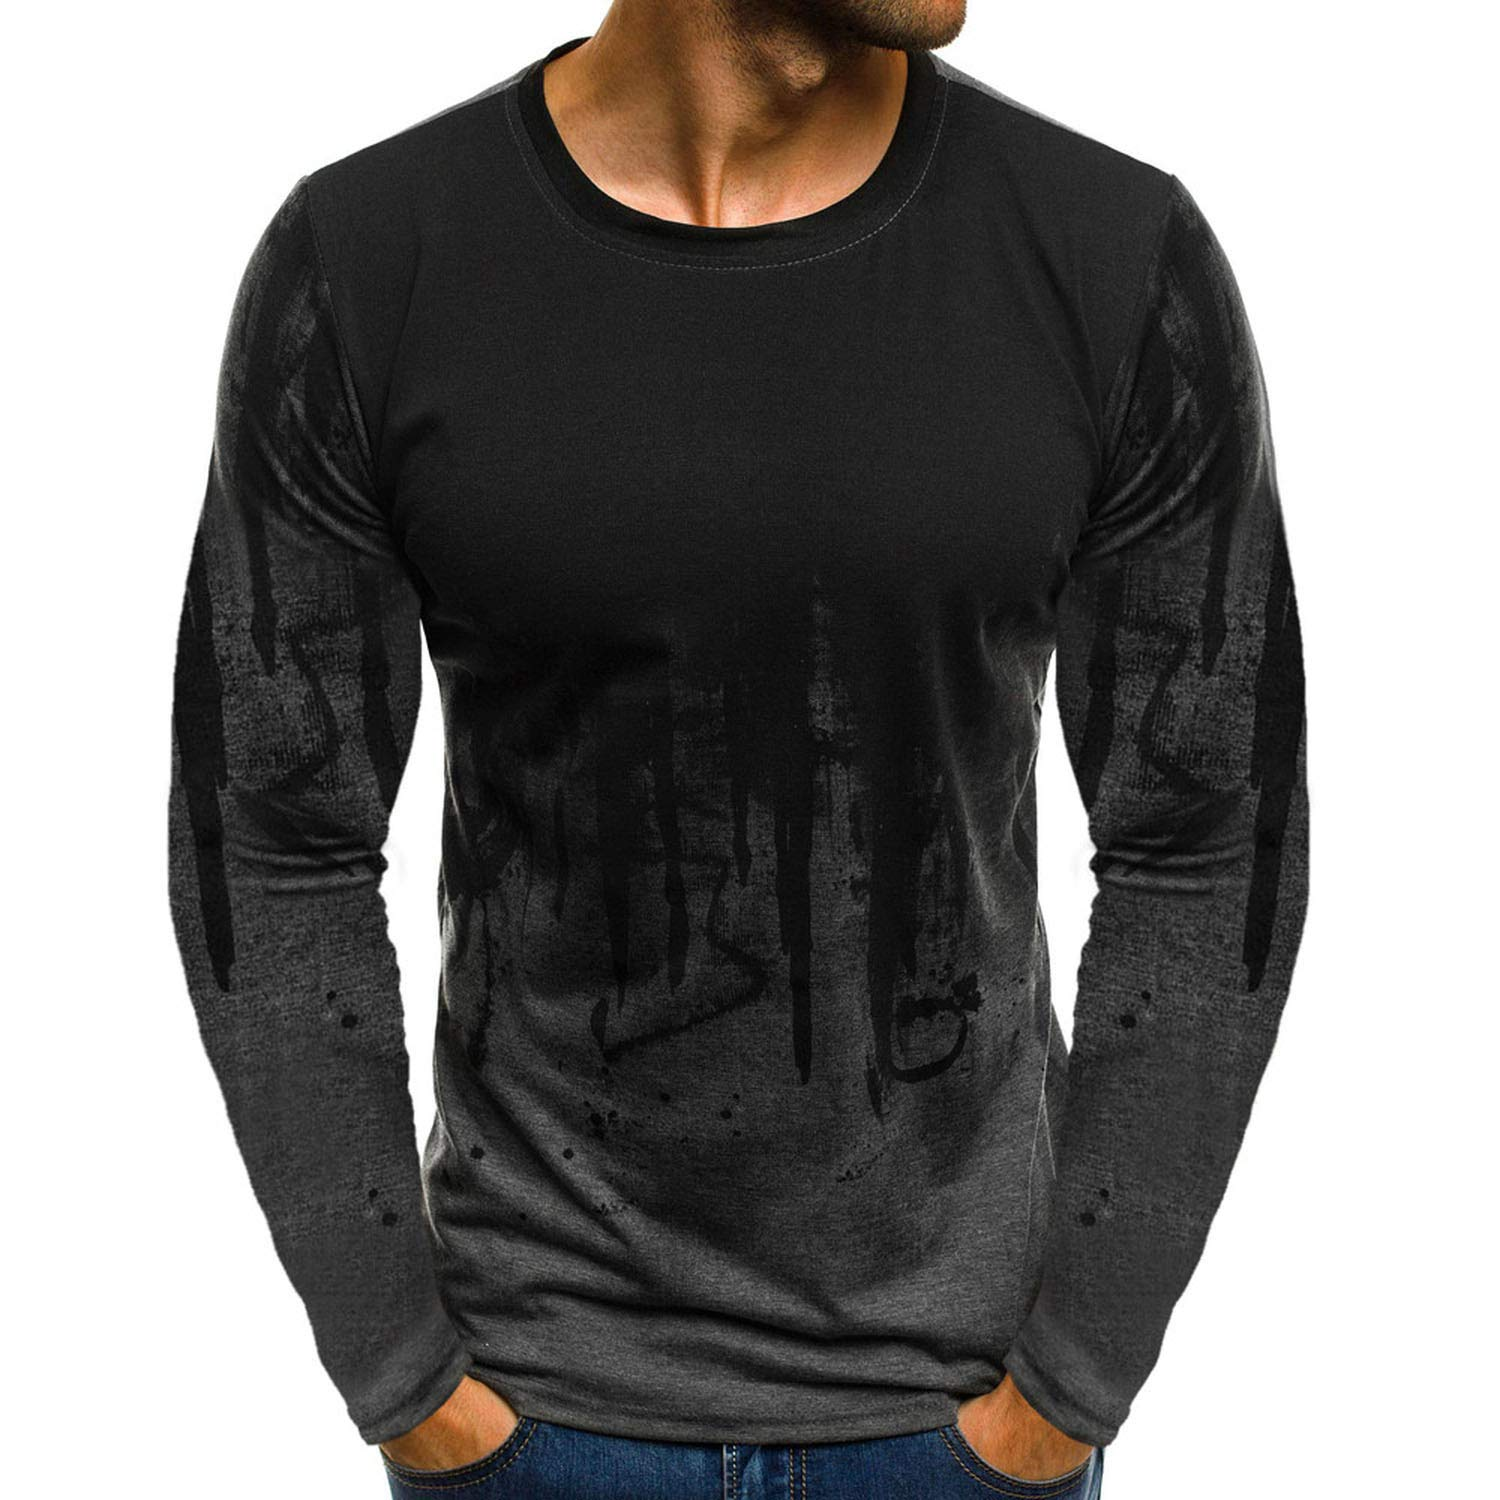 Men Long Sleeve Basic Tee Shirt Top Casual T Cotton Shirts,Army Green,L